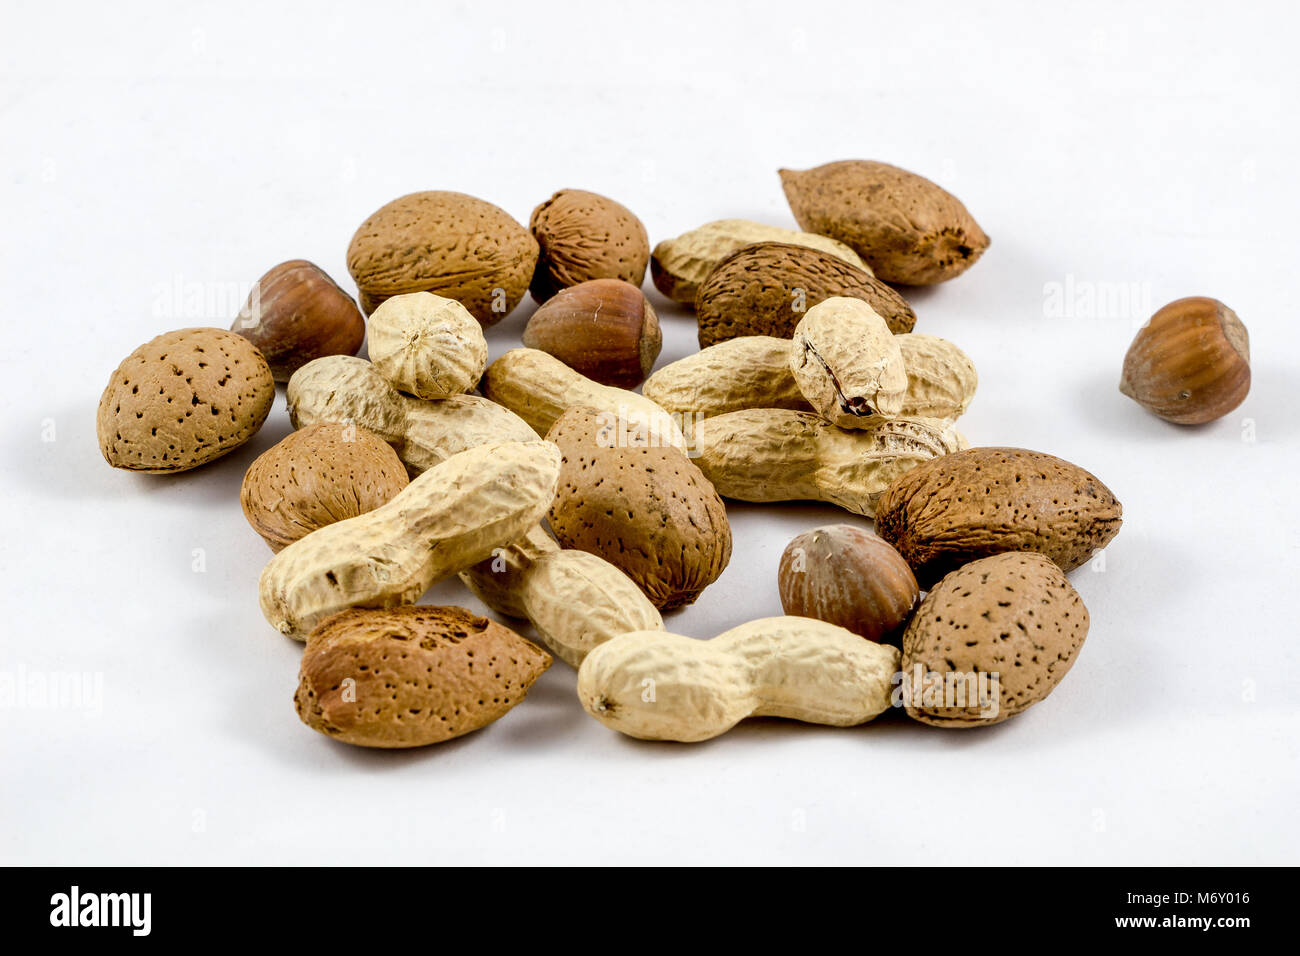 Healthy mix nuts on white background. Almonds, hazelnuts, peanuts Stock Photo